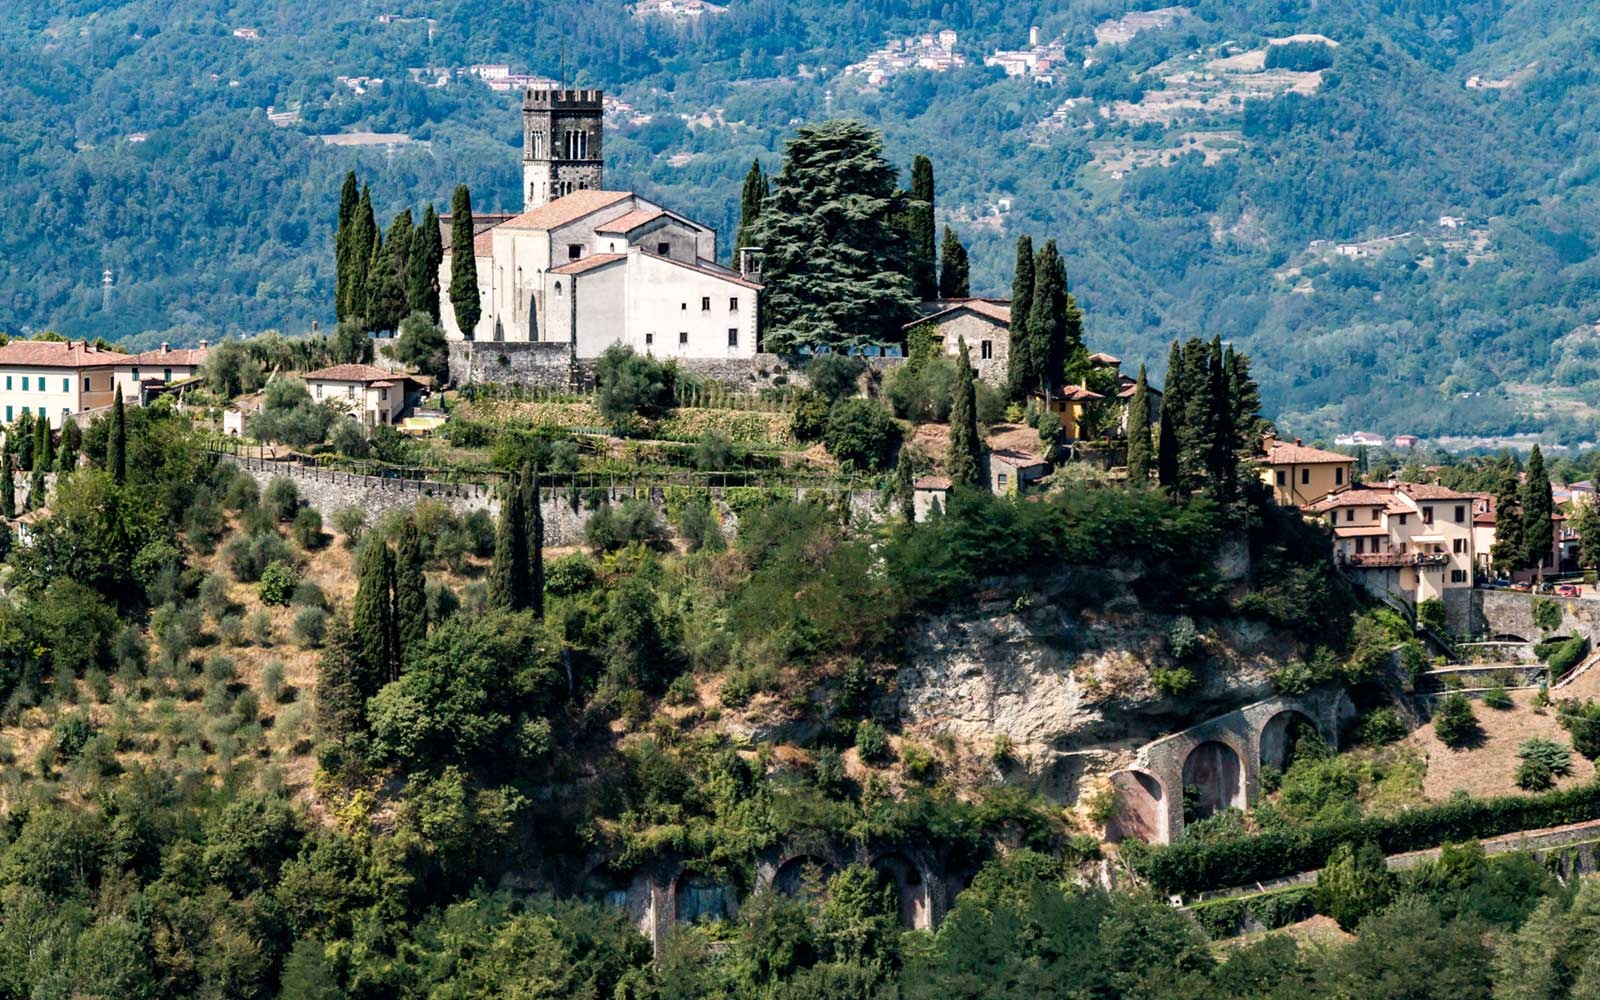 These Ancient Italian Towns Have All the Tuscan Beauty and None of the Crowds